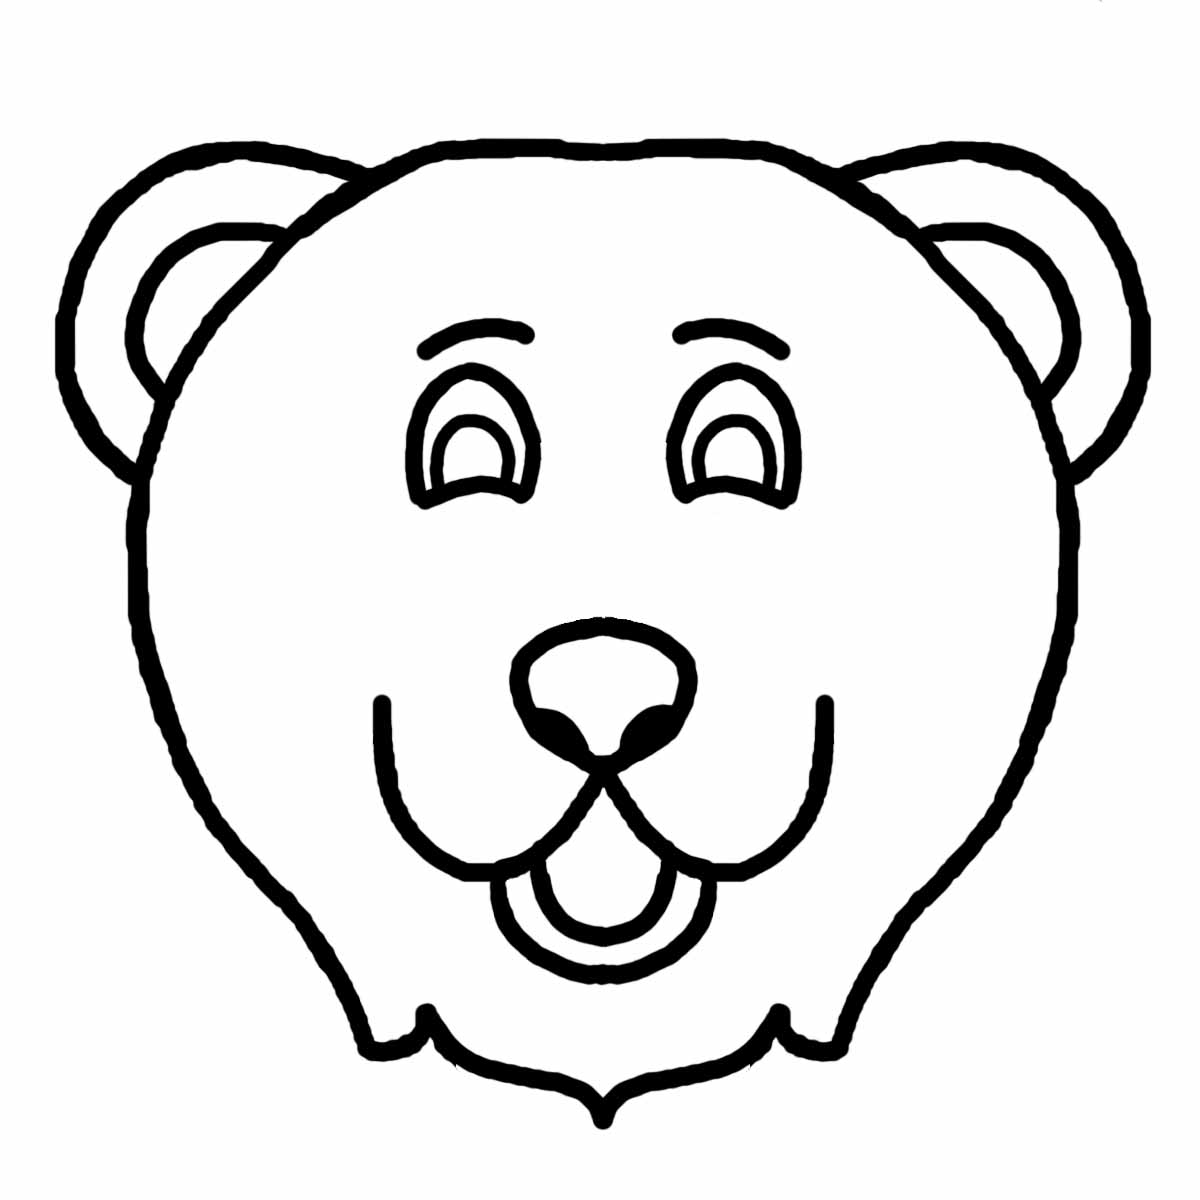 Bear face clipart black and white png transparent download Free Bear Head Clipart Black And White, Download Free Clip Art, Free ... png transparent download